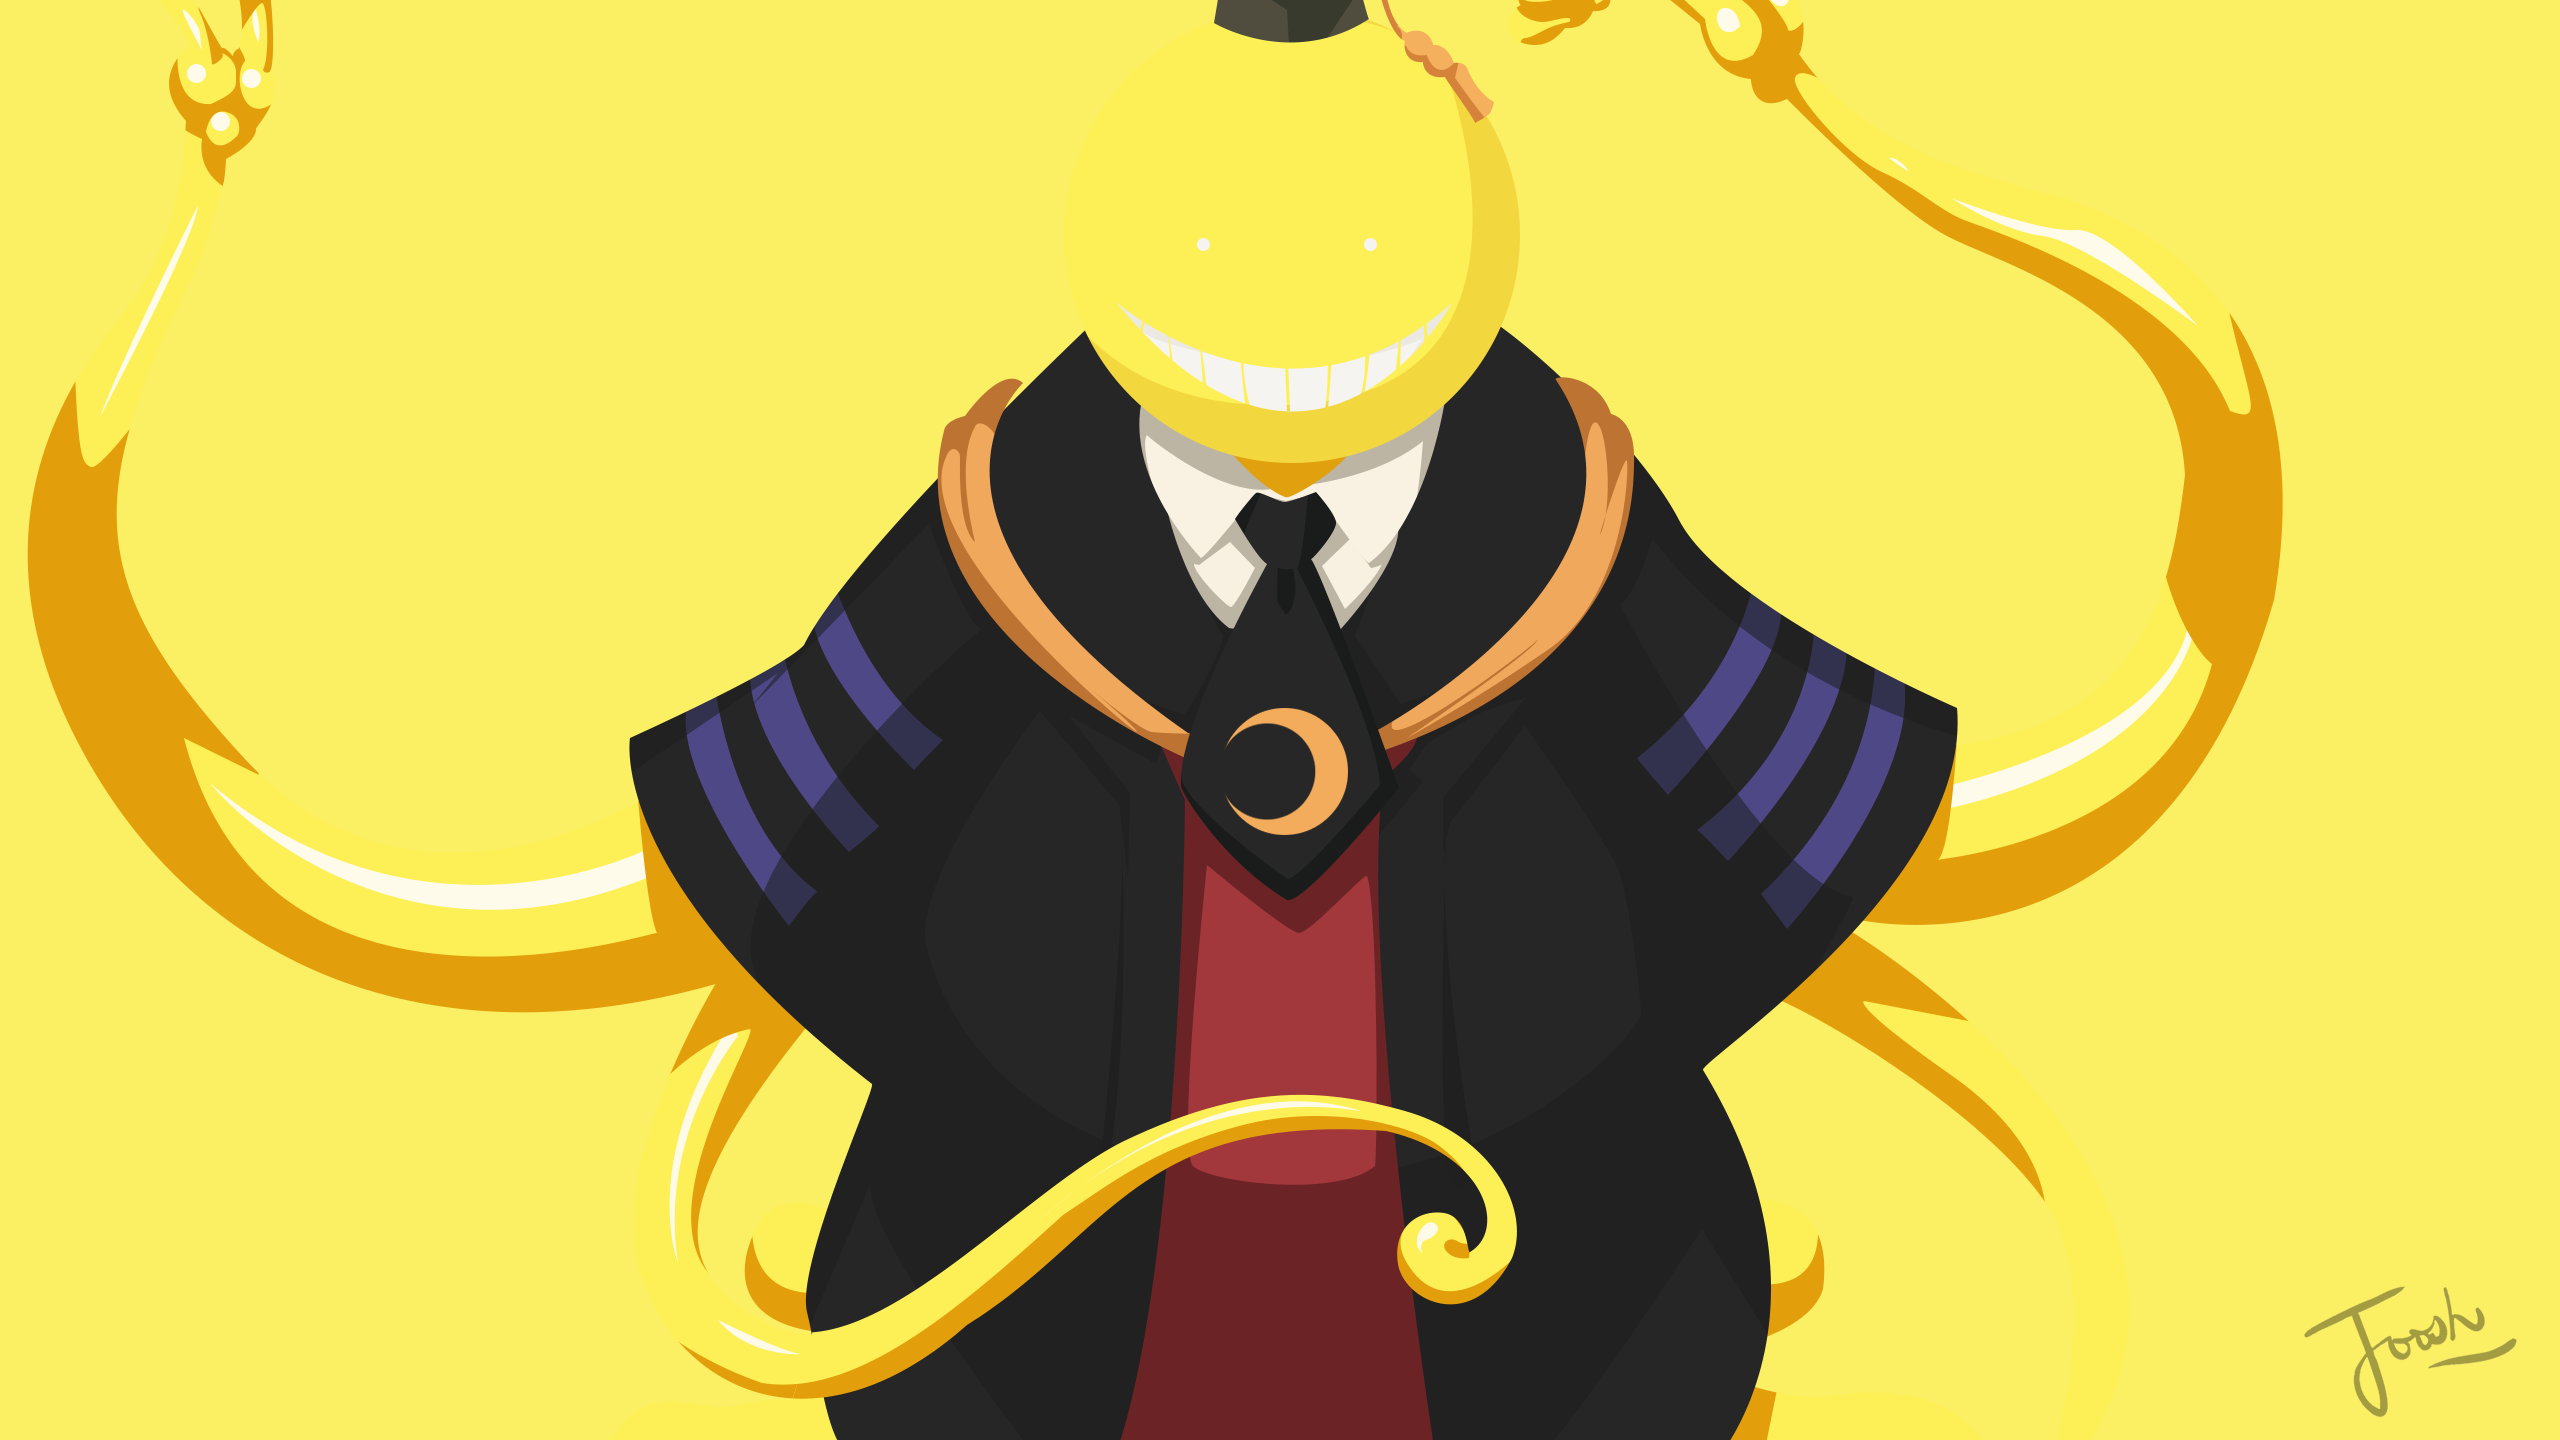 Minimalist Classroom Wallpaper ~ Koro sensei bg minimalist design wallpaper by